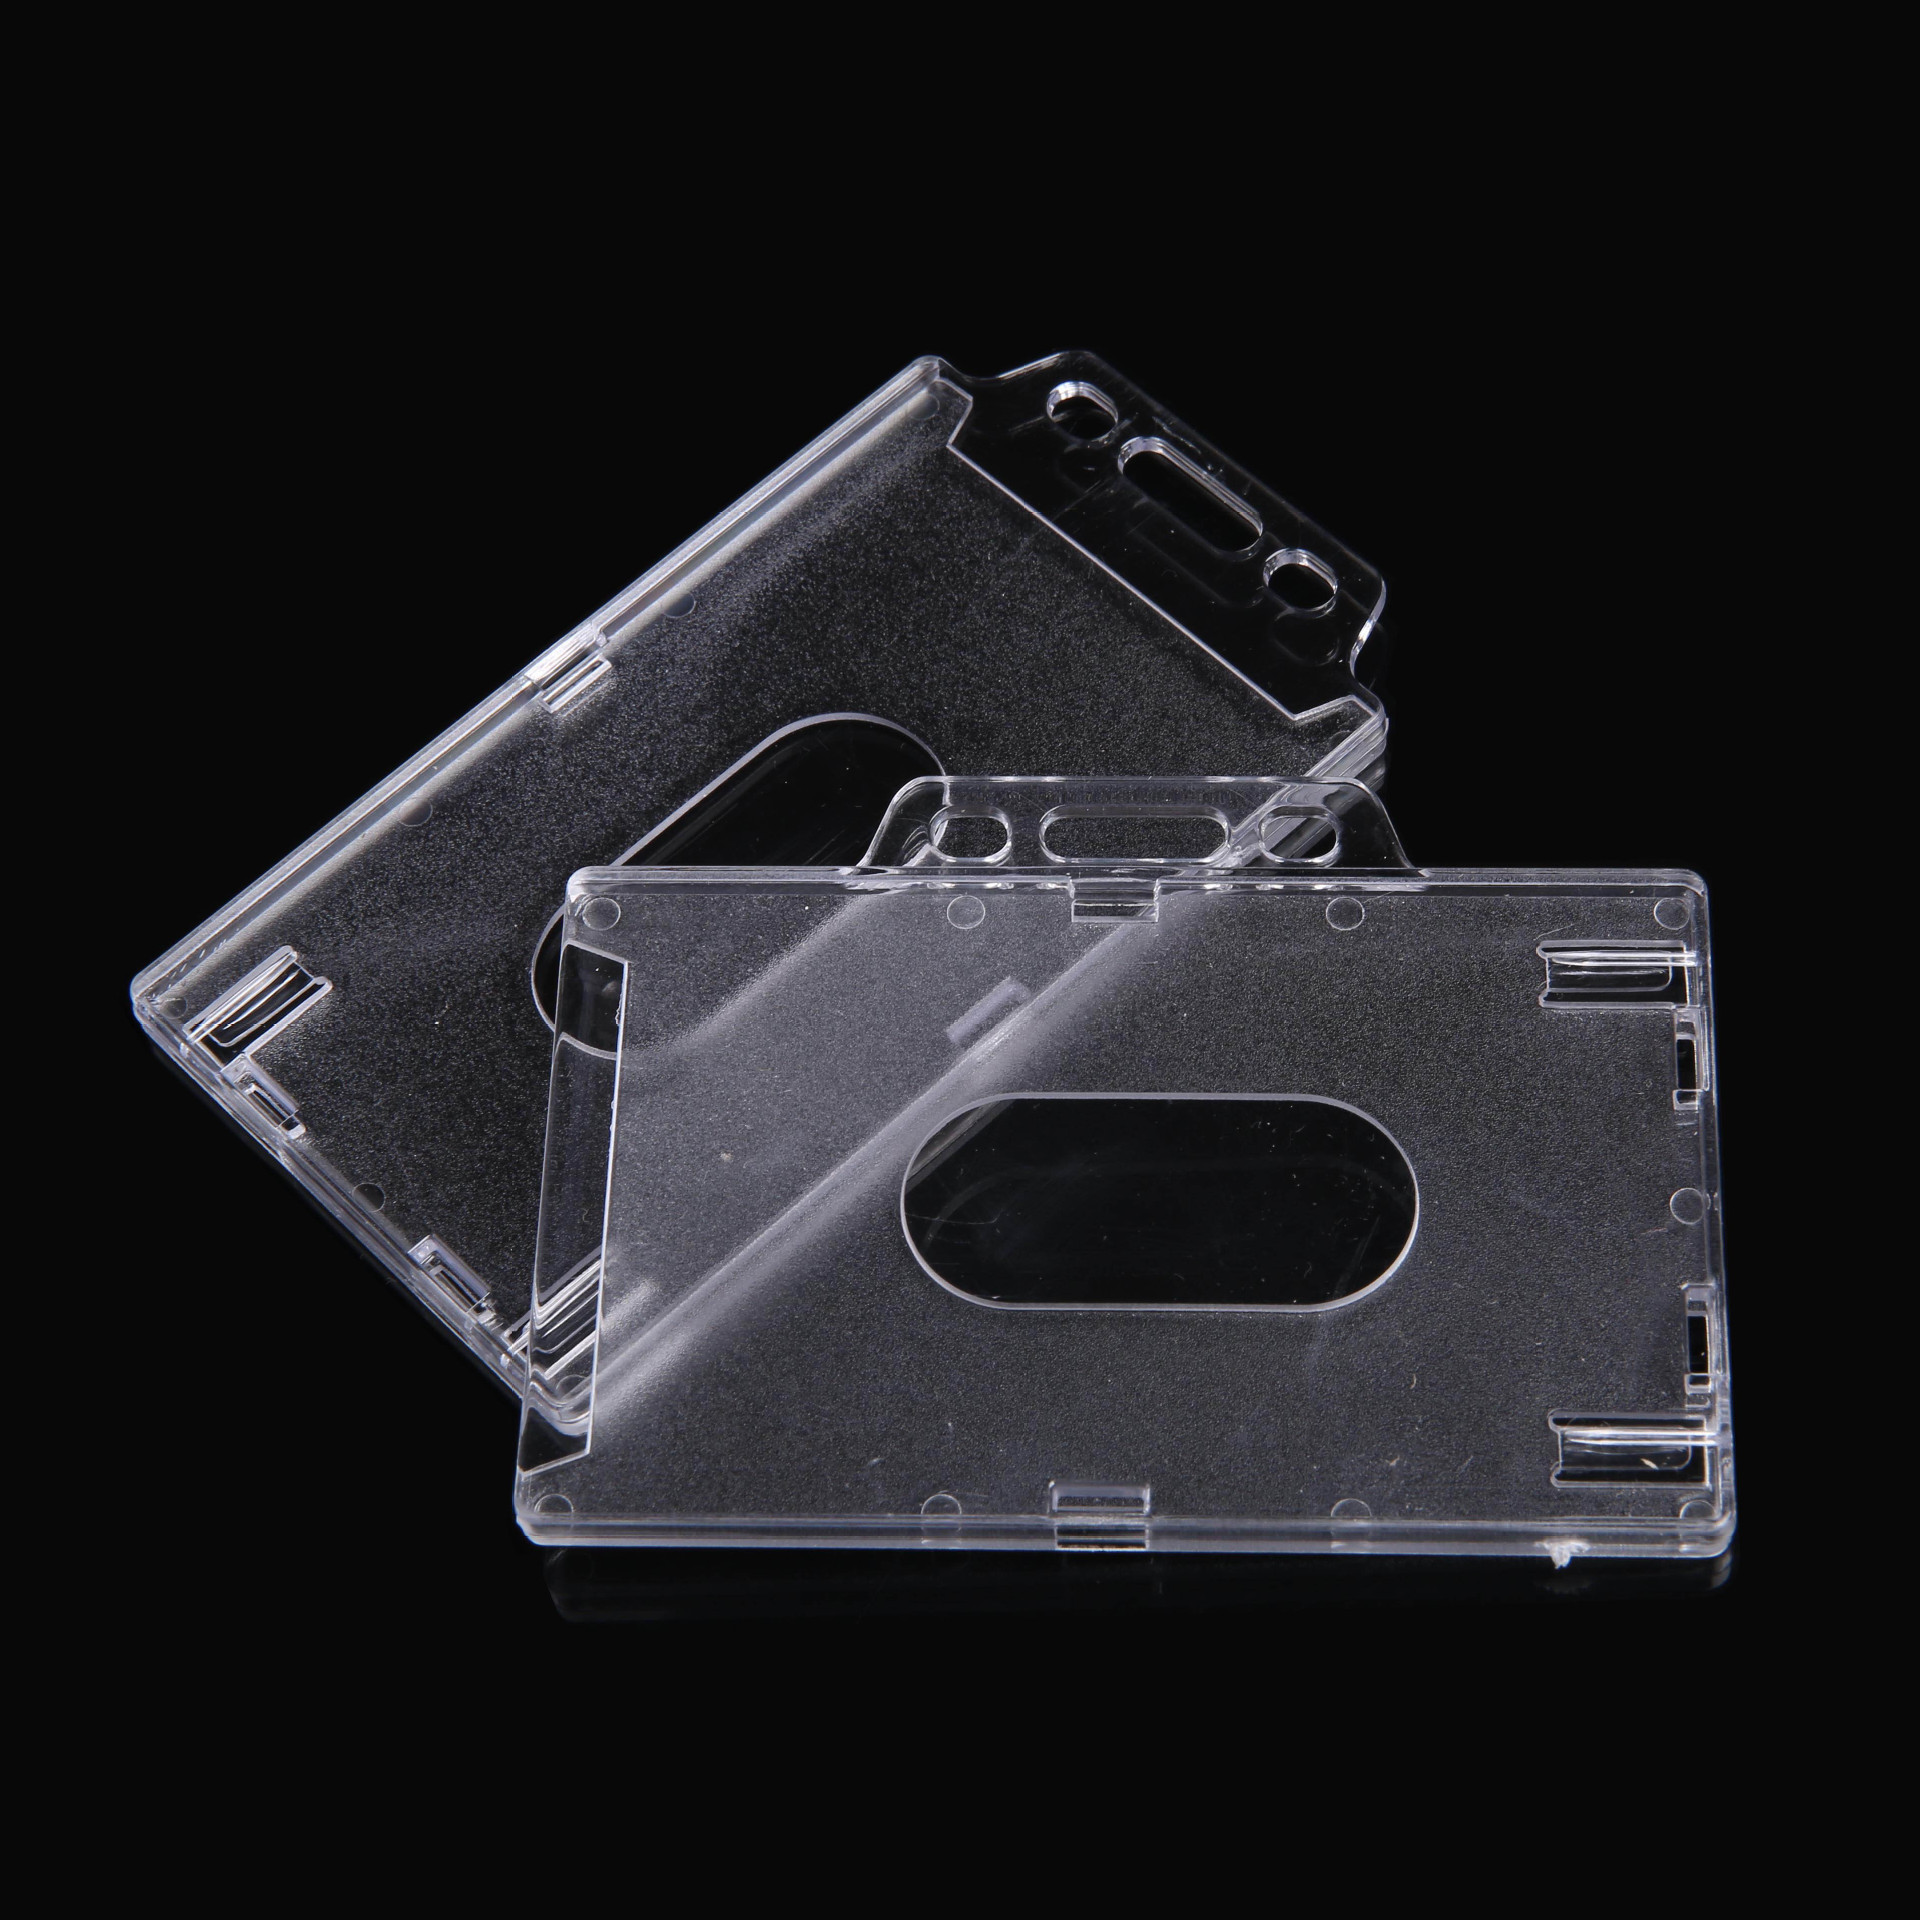 Acrylic Transparent Certificate Card Sleeve Hard Card Folder IC Card Holder Access Control Card Holder Bus Card Holder